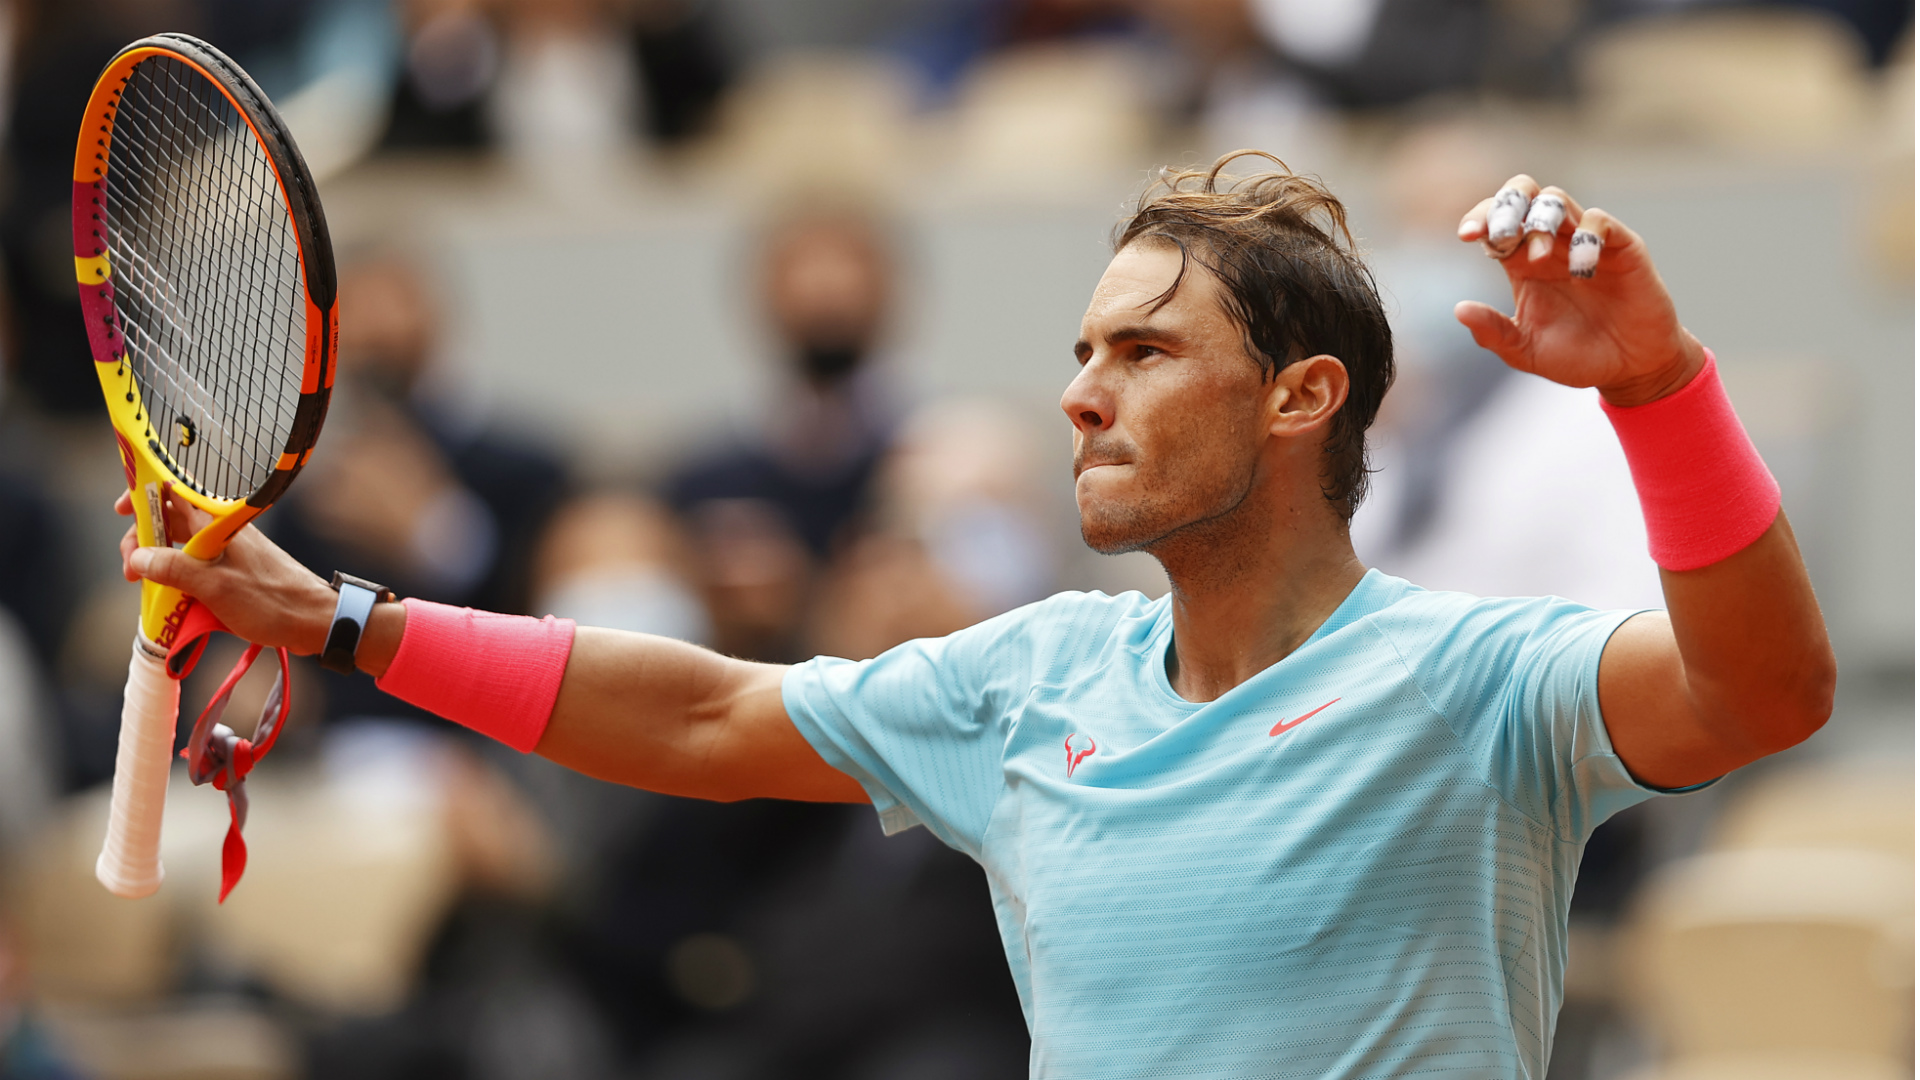 French Open 2020: Rafael Nadal drops just four games in reaching round three